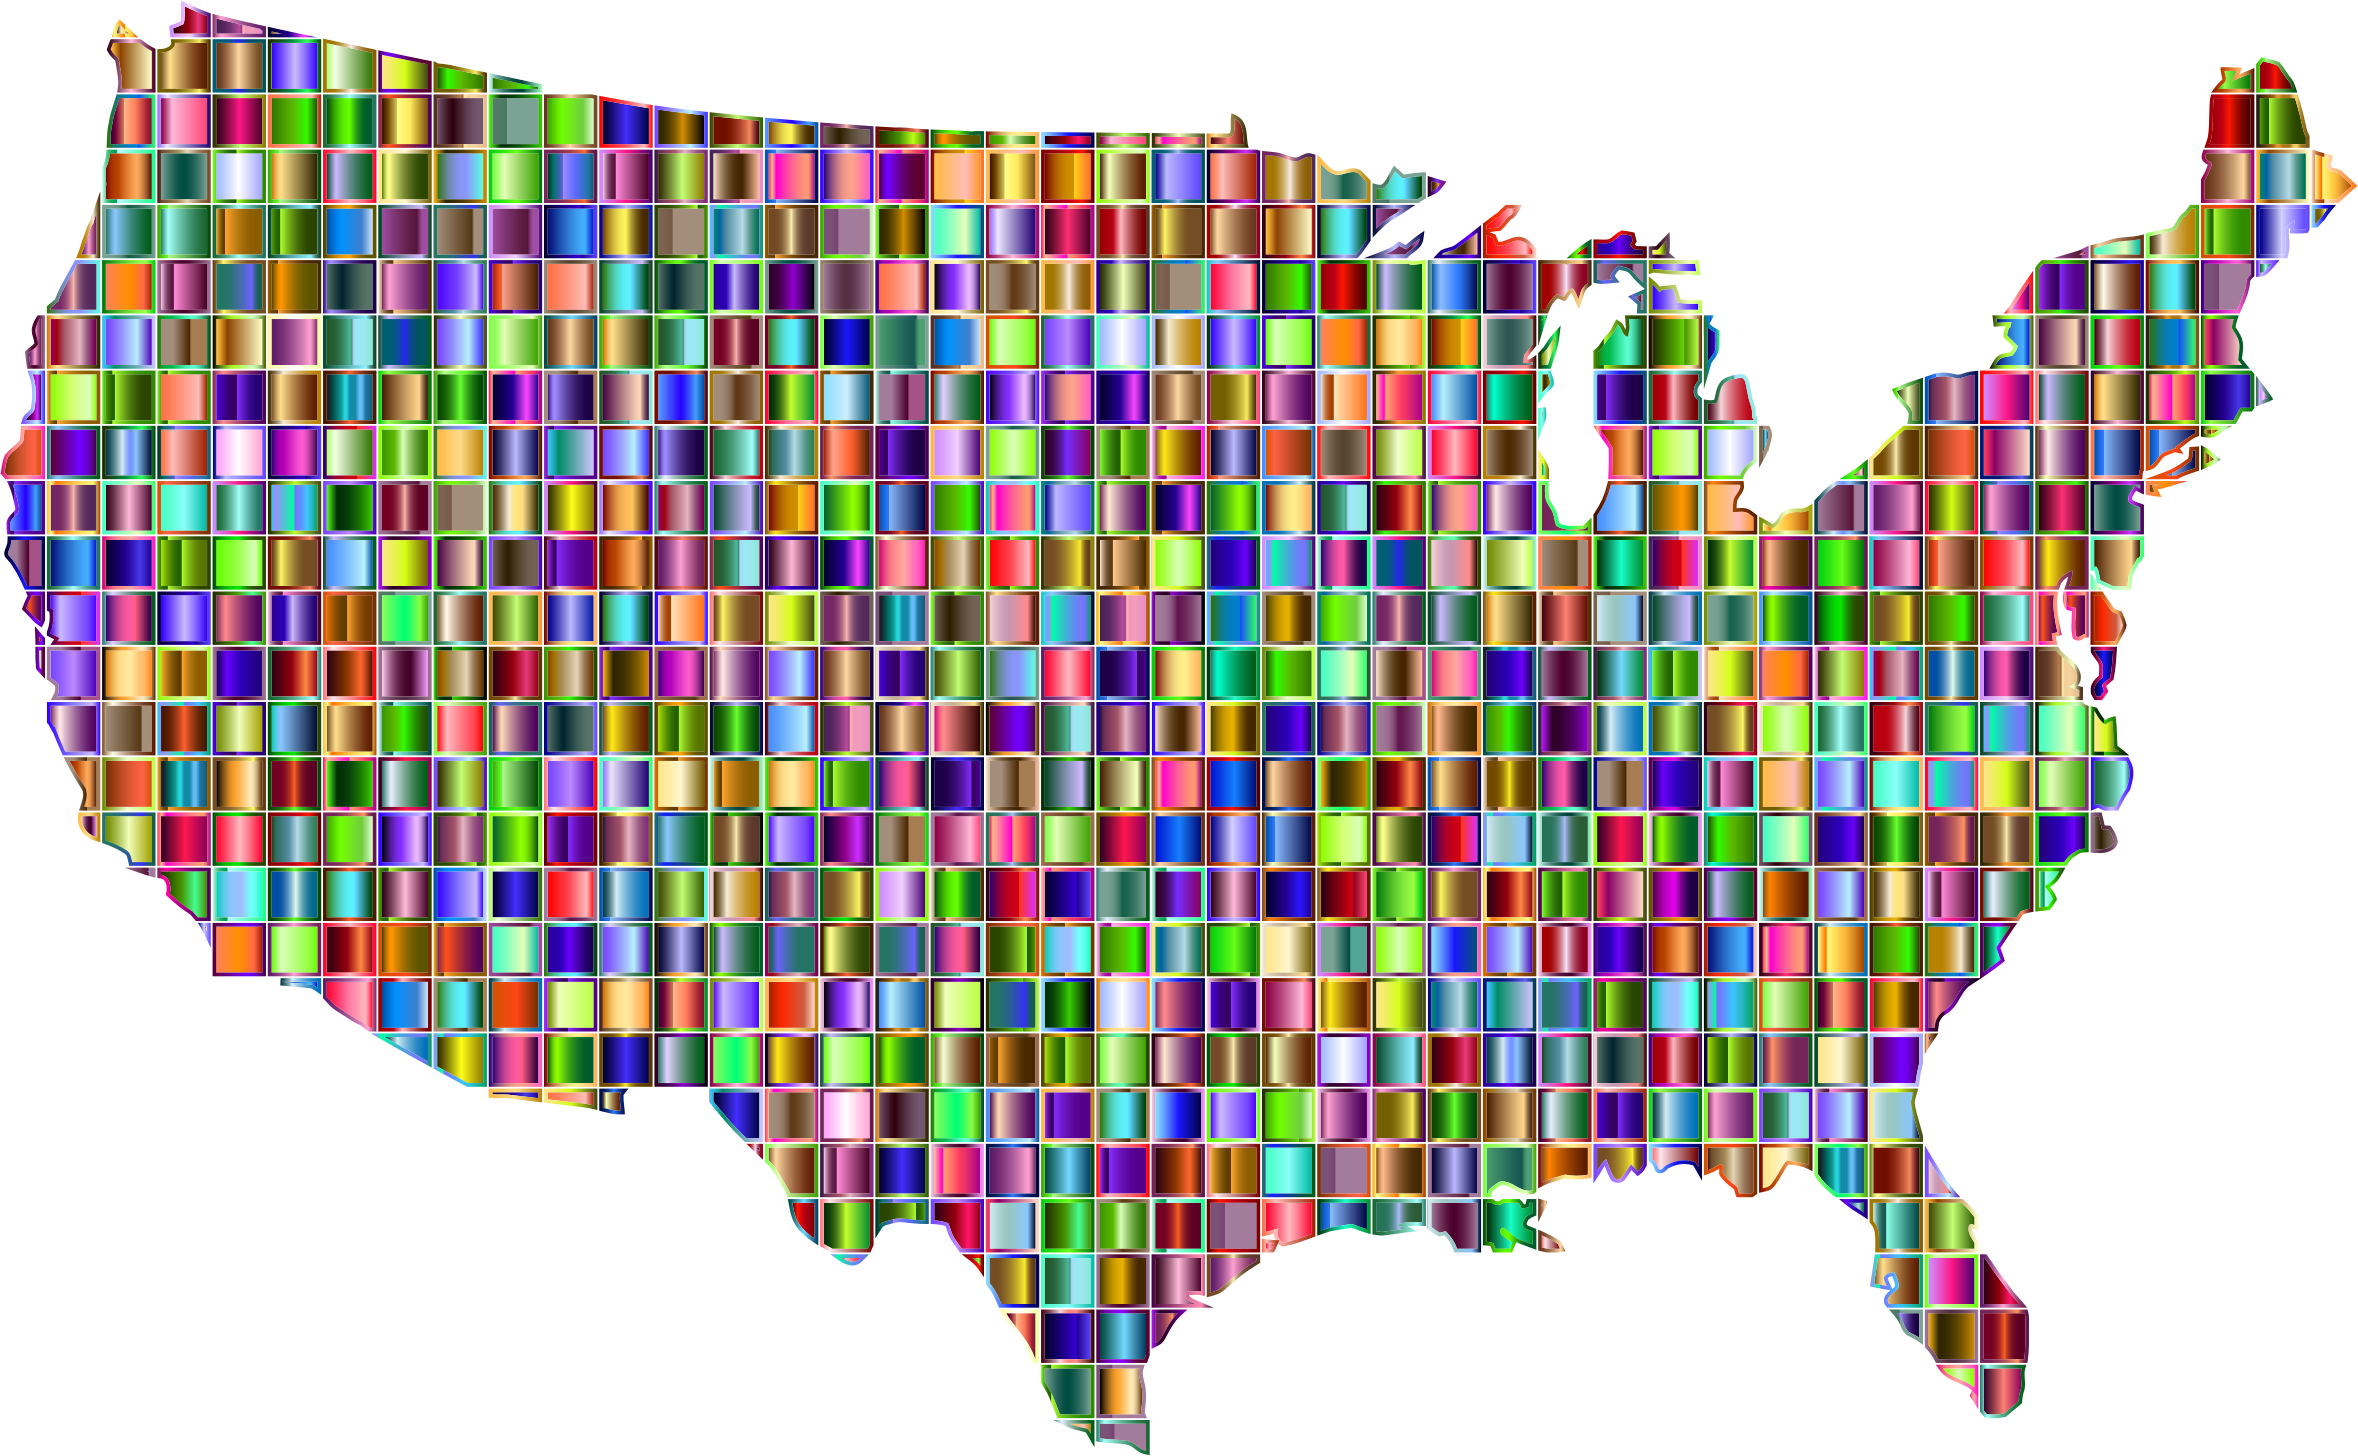 Clipart - Chromatic Mosaic United States Map